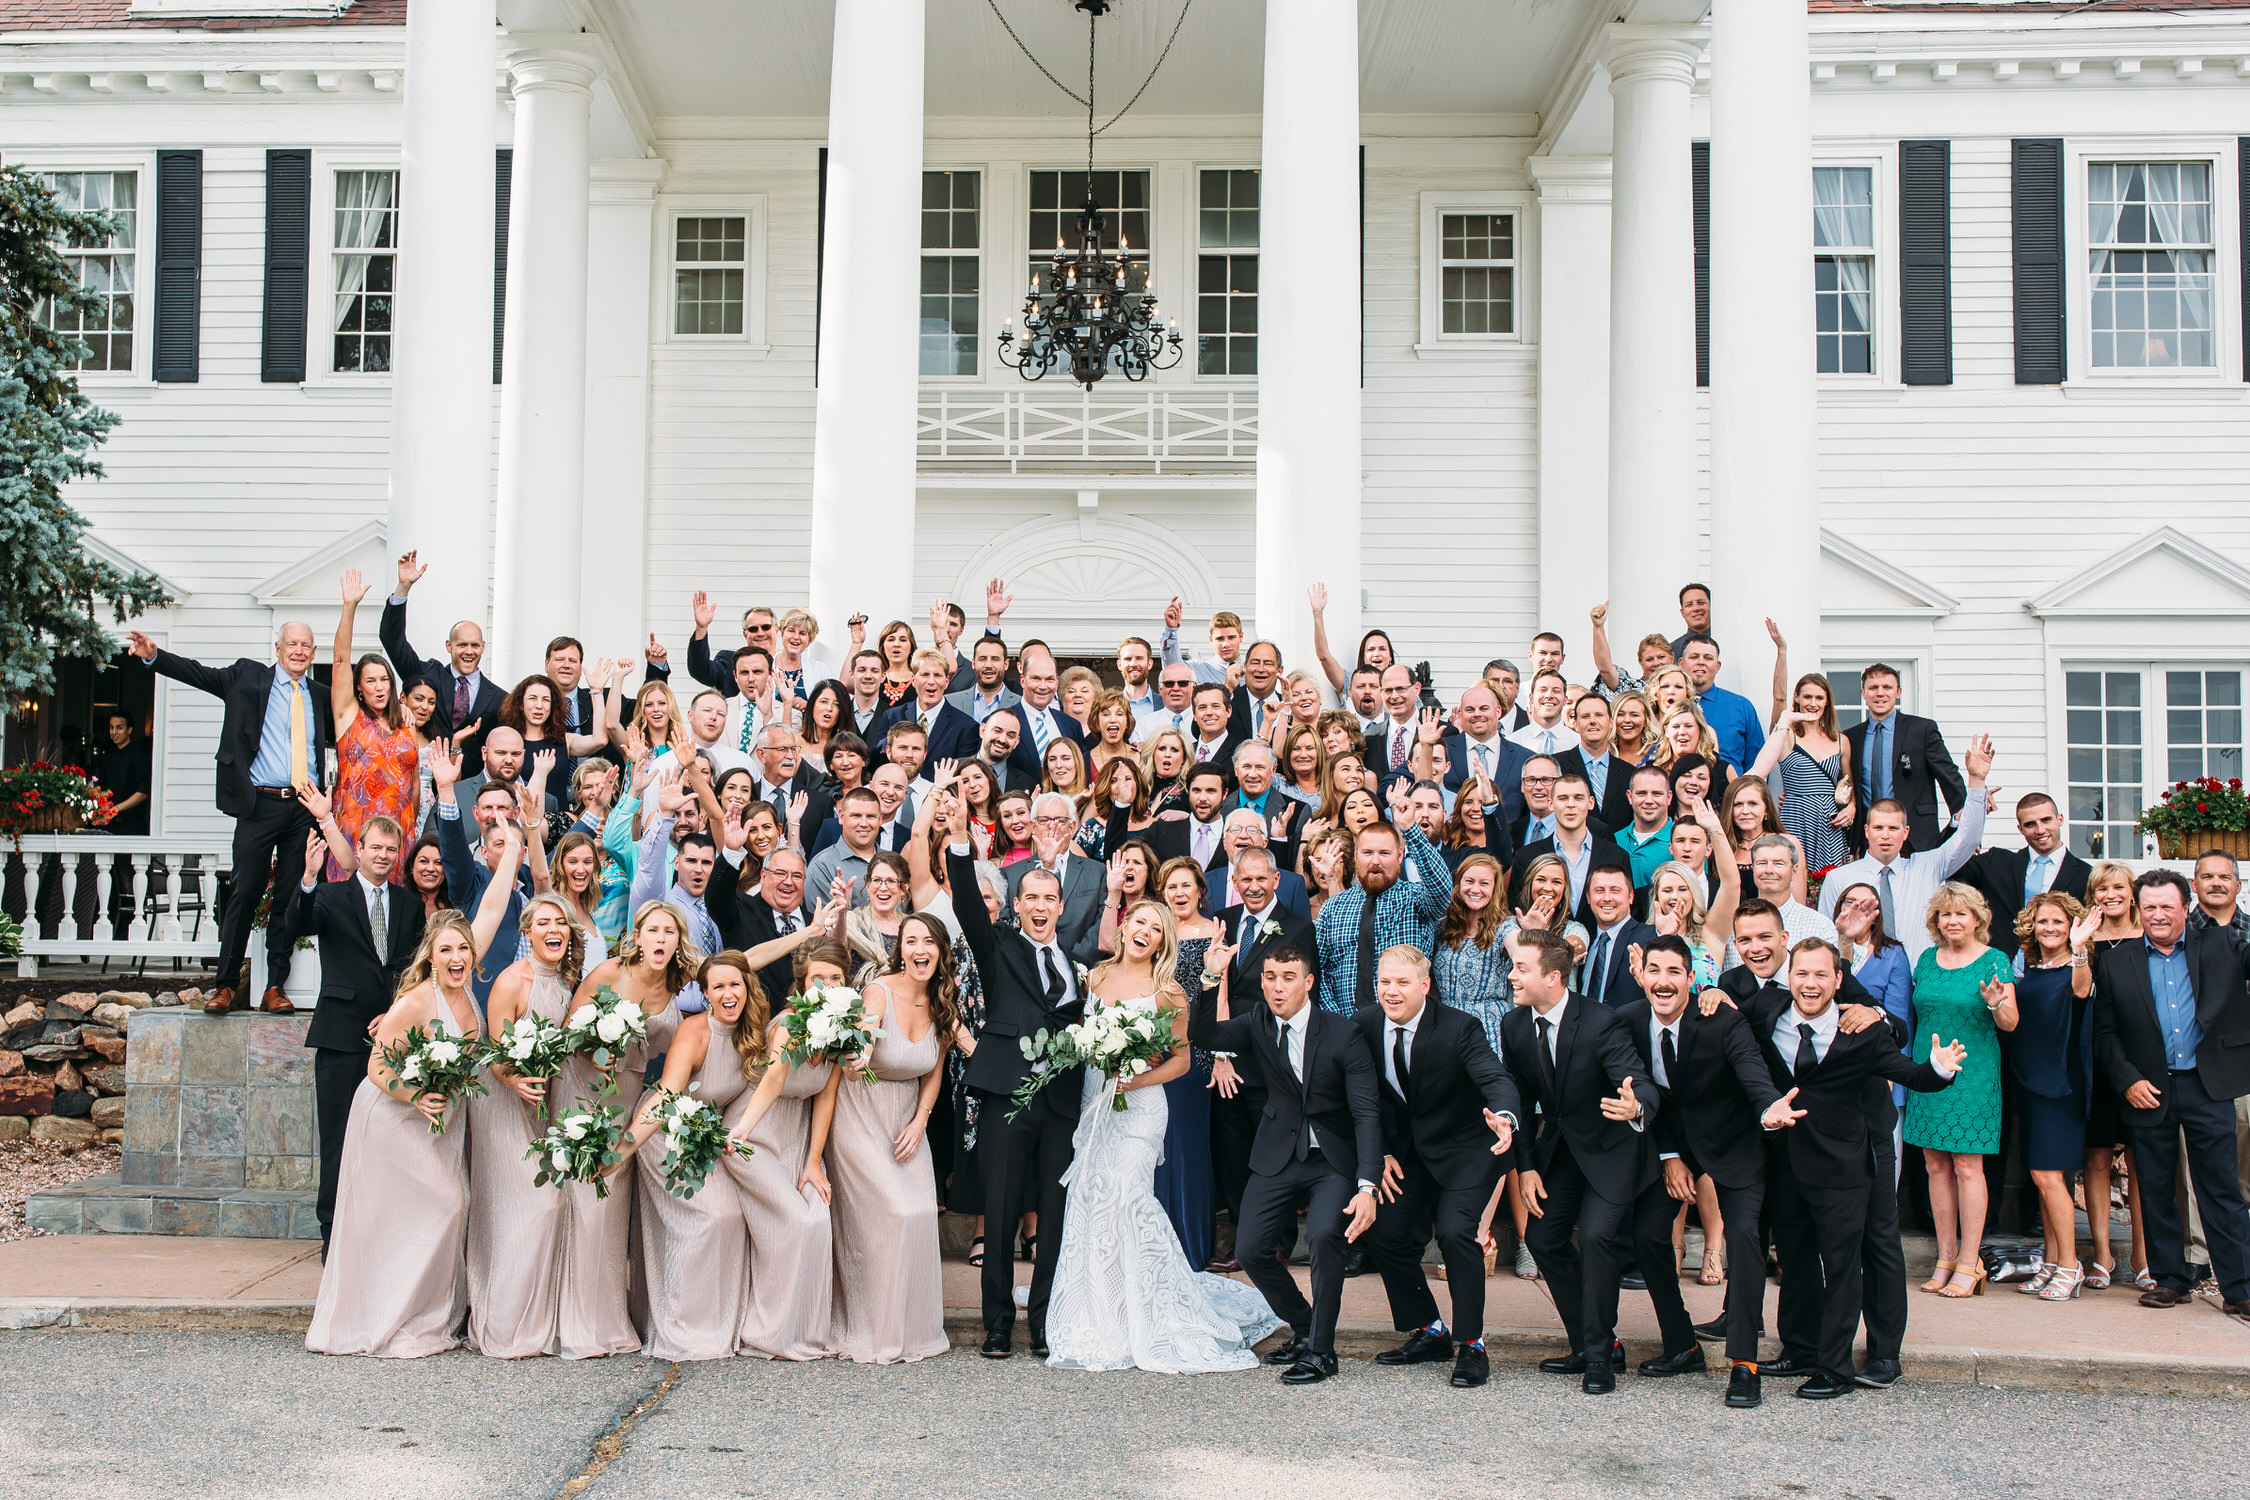 Big group photos on the wedding day, Destination Wedding, Denver Wedding Photographer